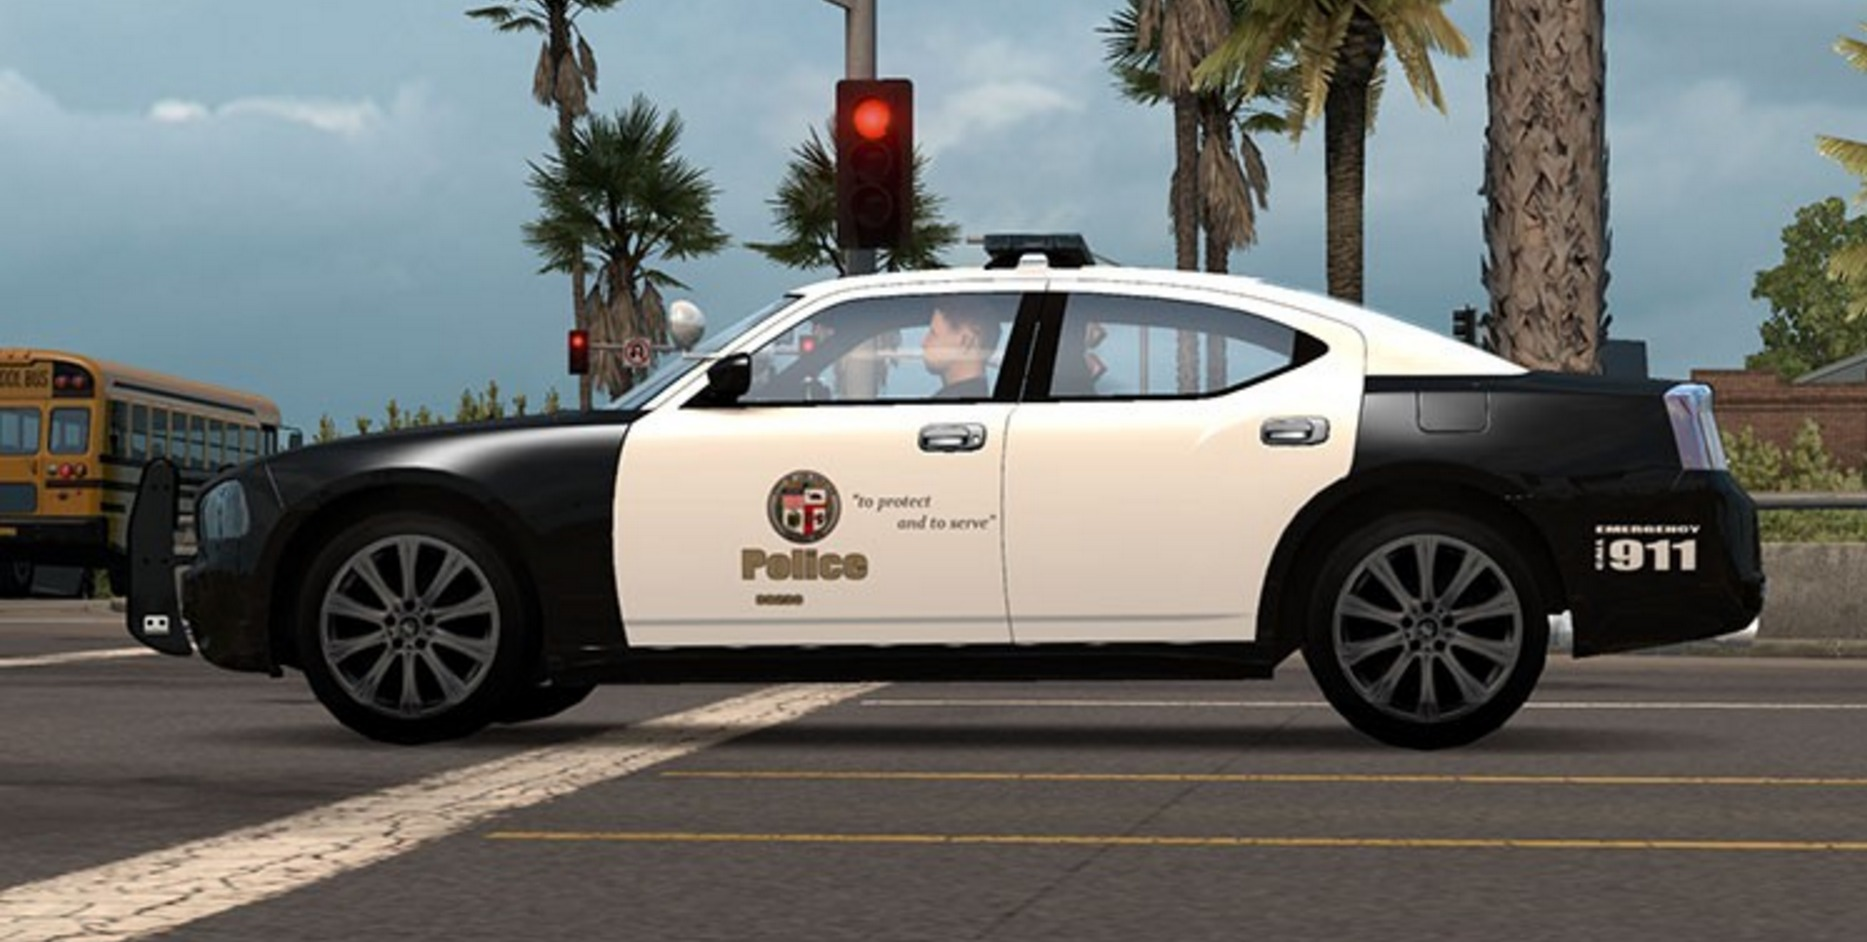 ai-police-dodge-charger-for-ats-2.jpeg